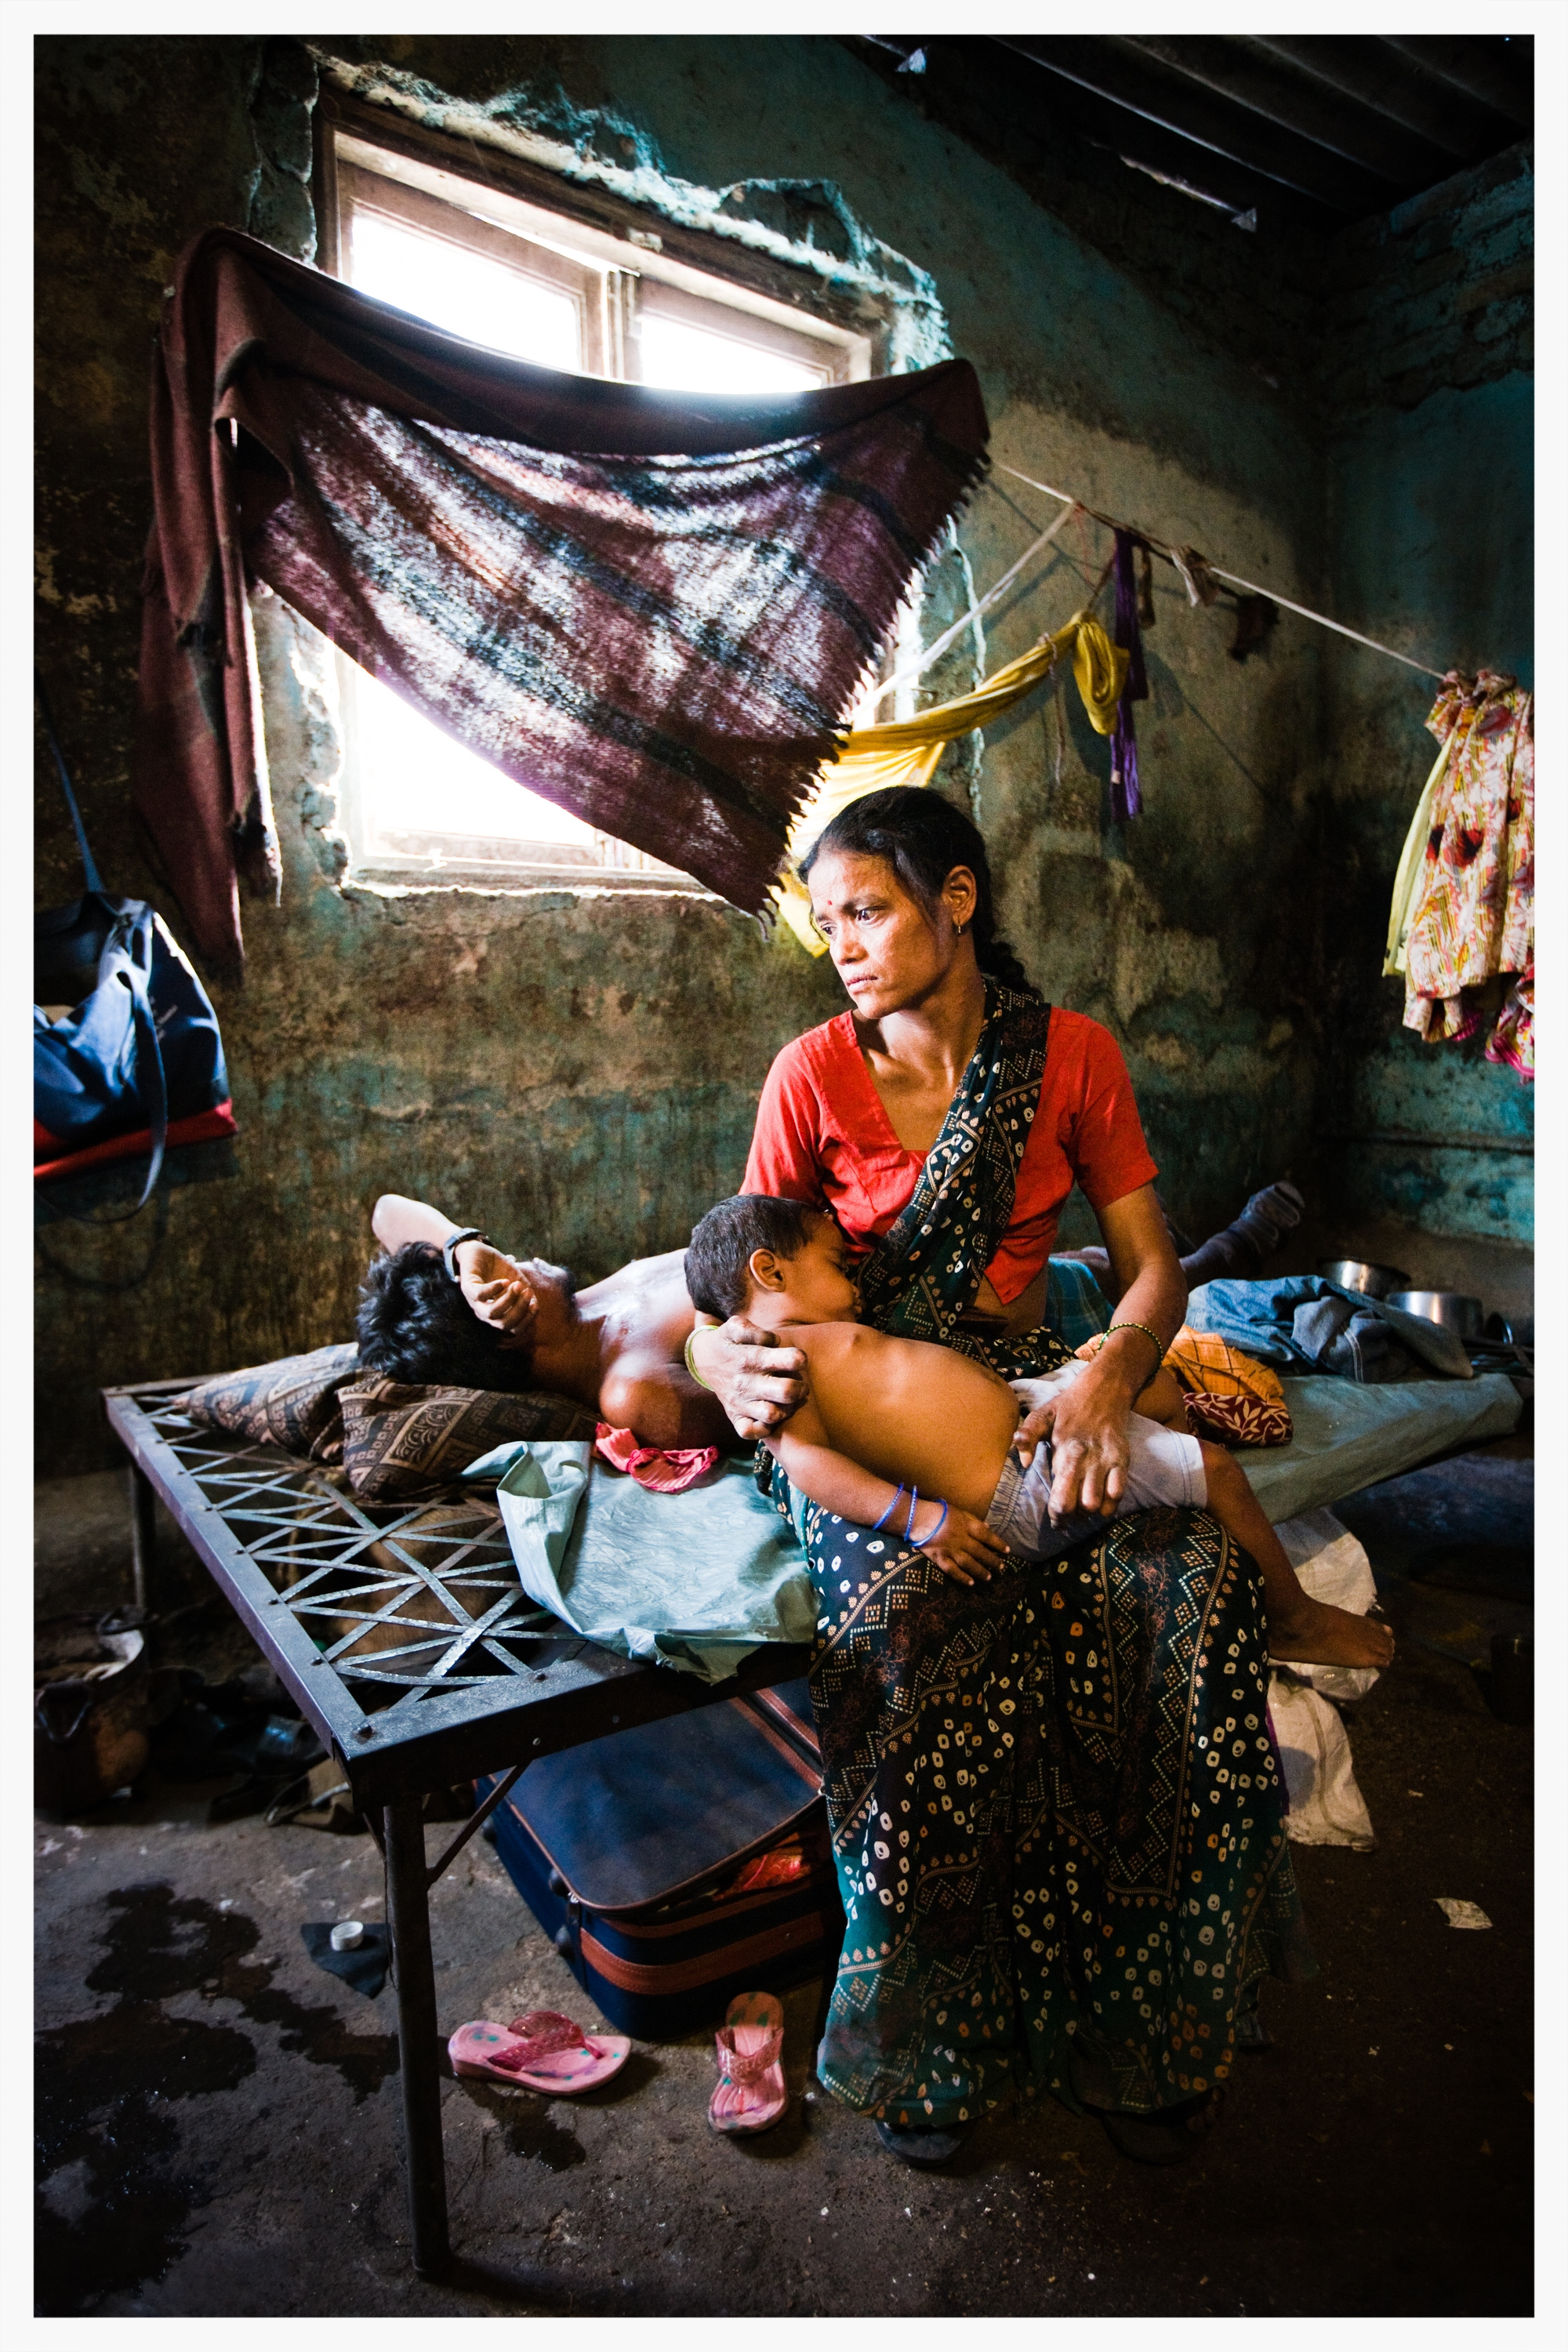 Desolation, Indian Dalits,Being Untouchable. Photo: © Marcus Perkins